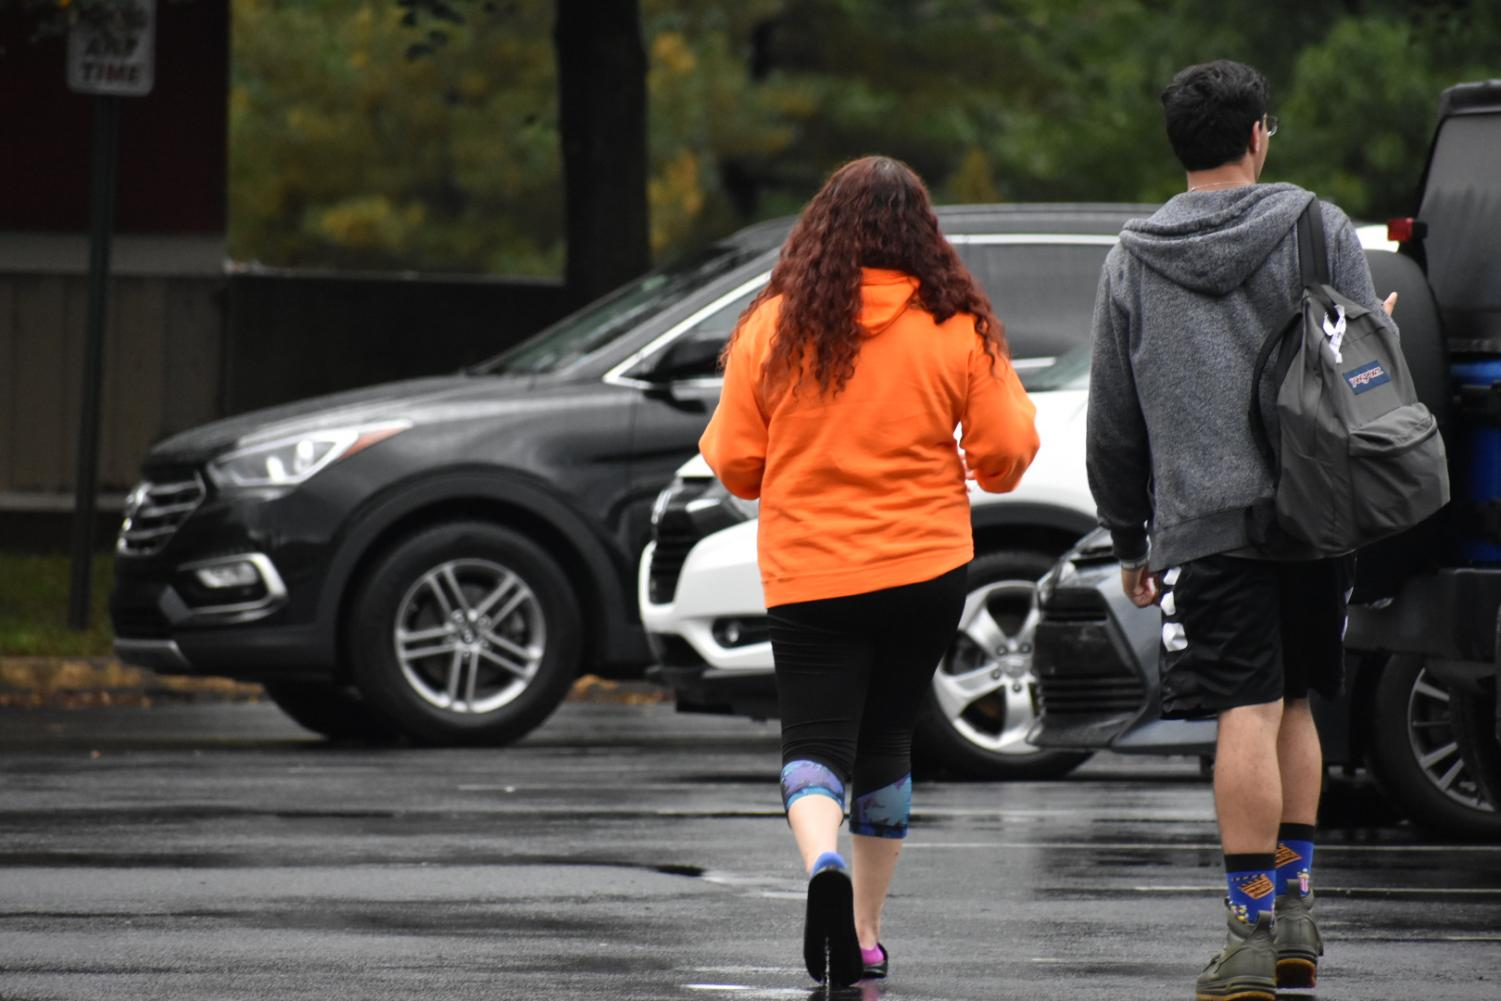 Commuter students Brianna Boggs and Cesar Corvera walk to their vehicles.